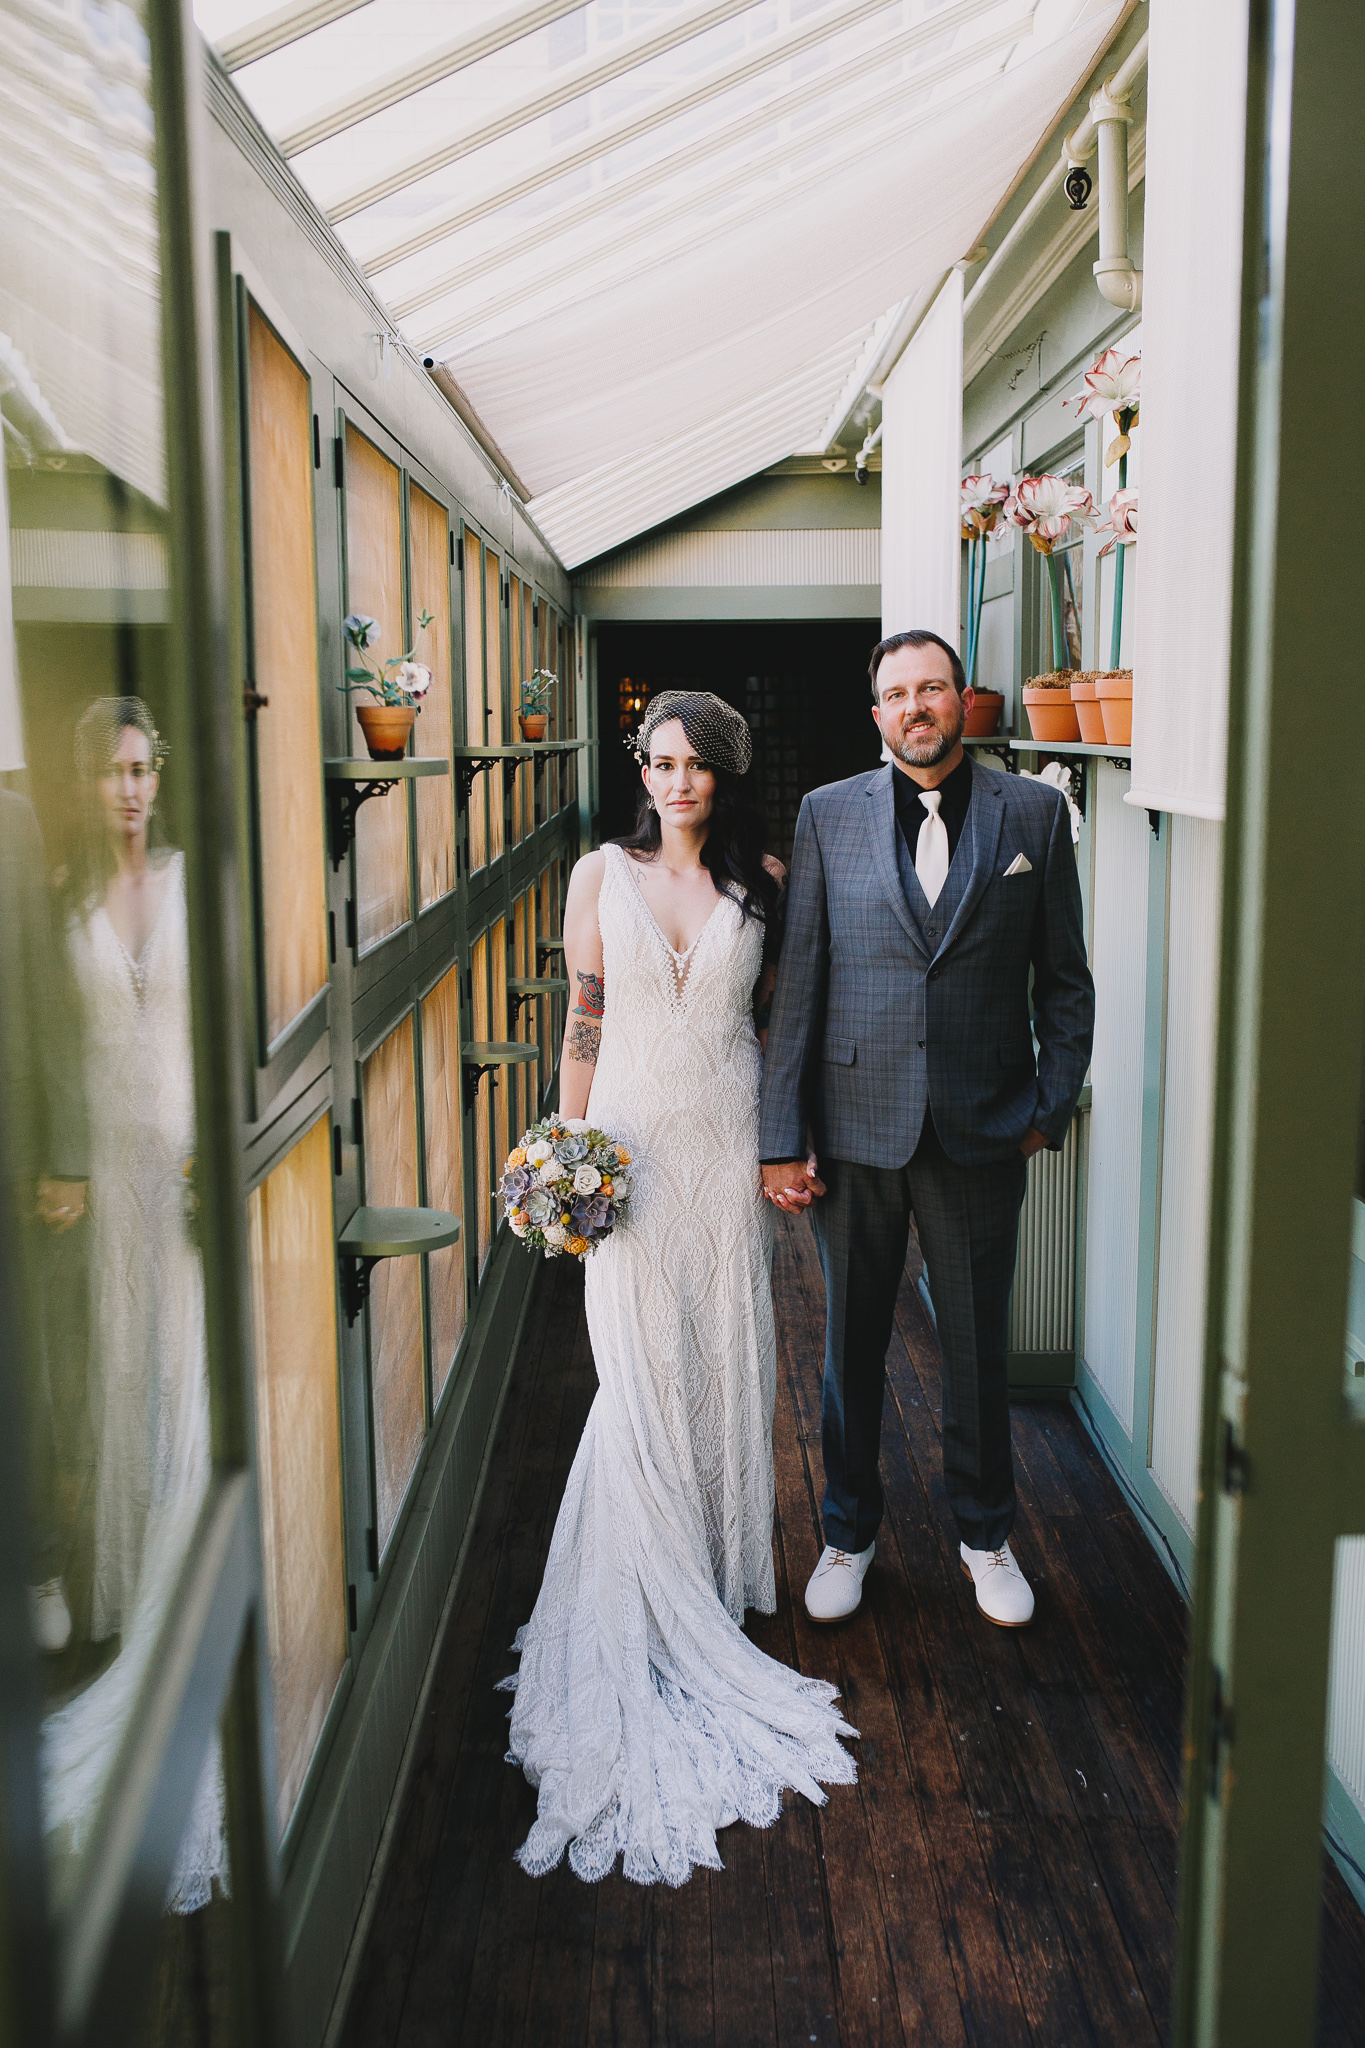 Archer Inspired Photography Sara and Aaron Winchester Mystery House NorCal San Jose California Wedding Photographer-274.jpg